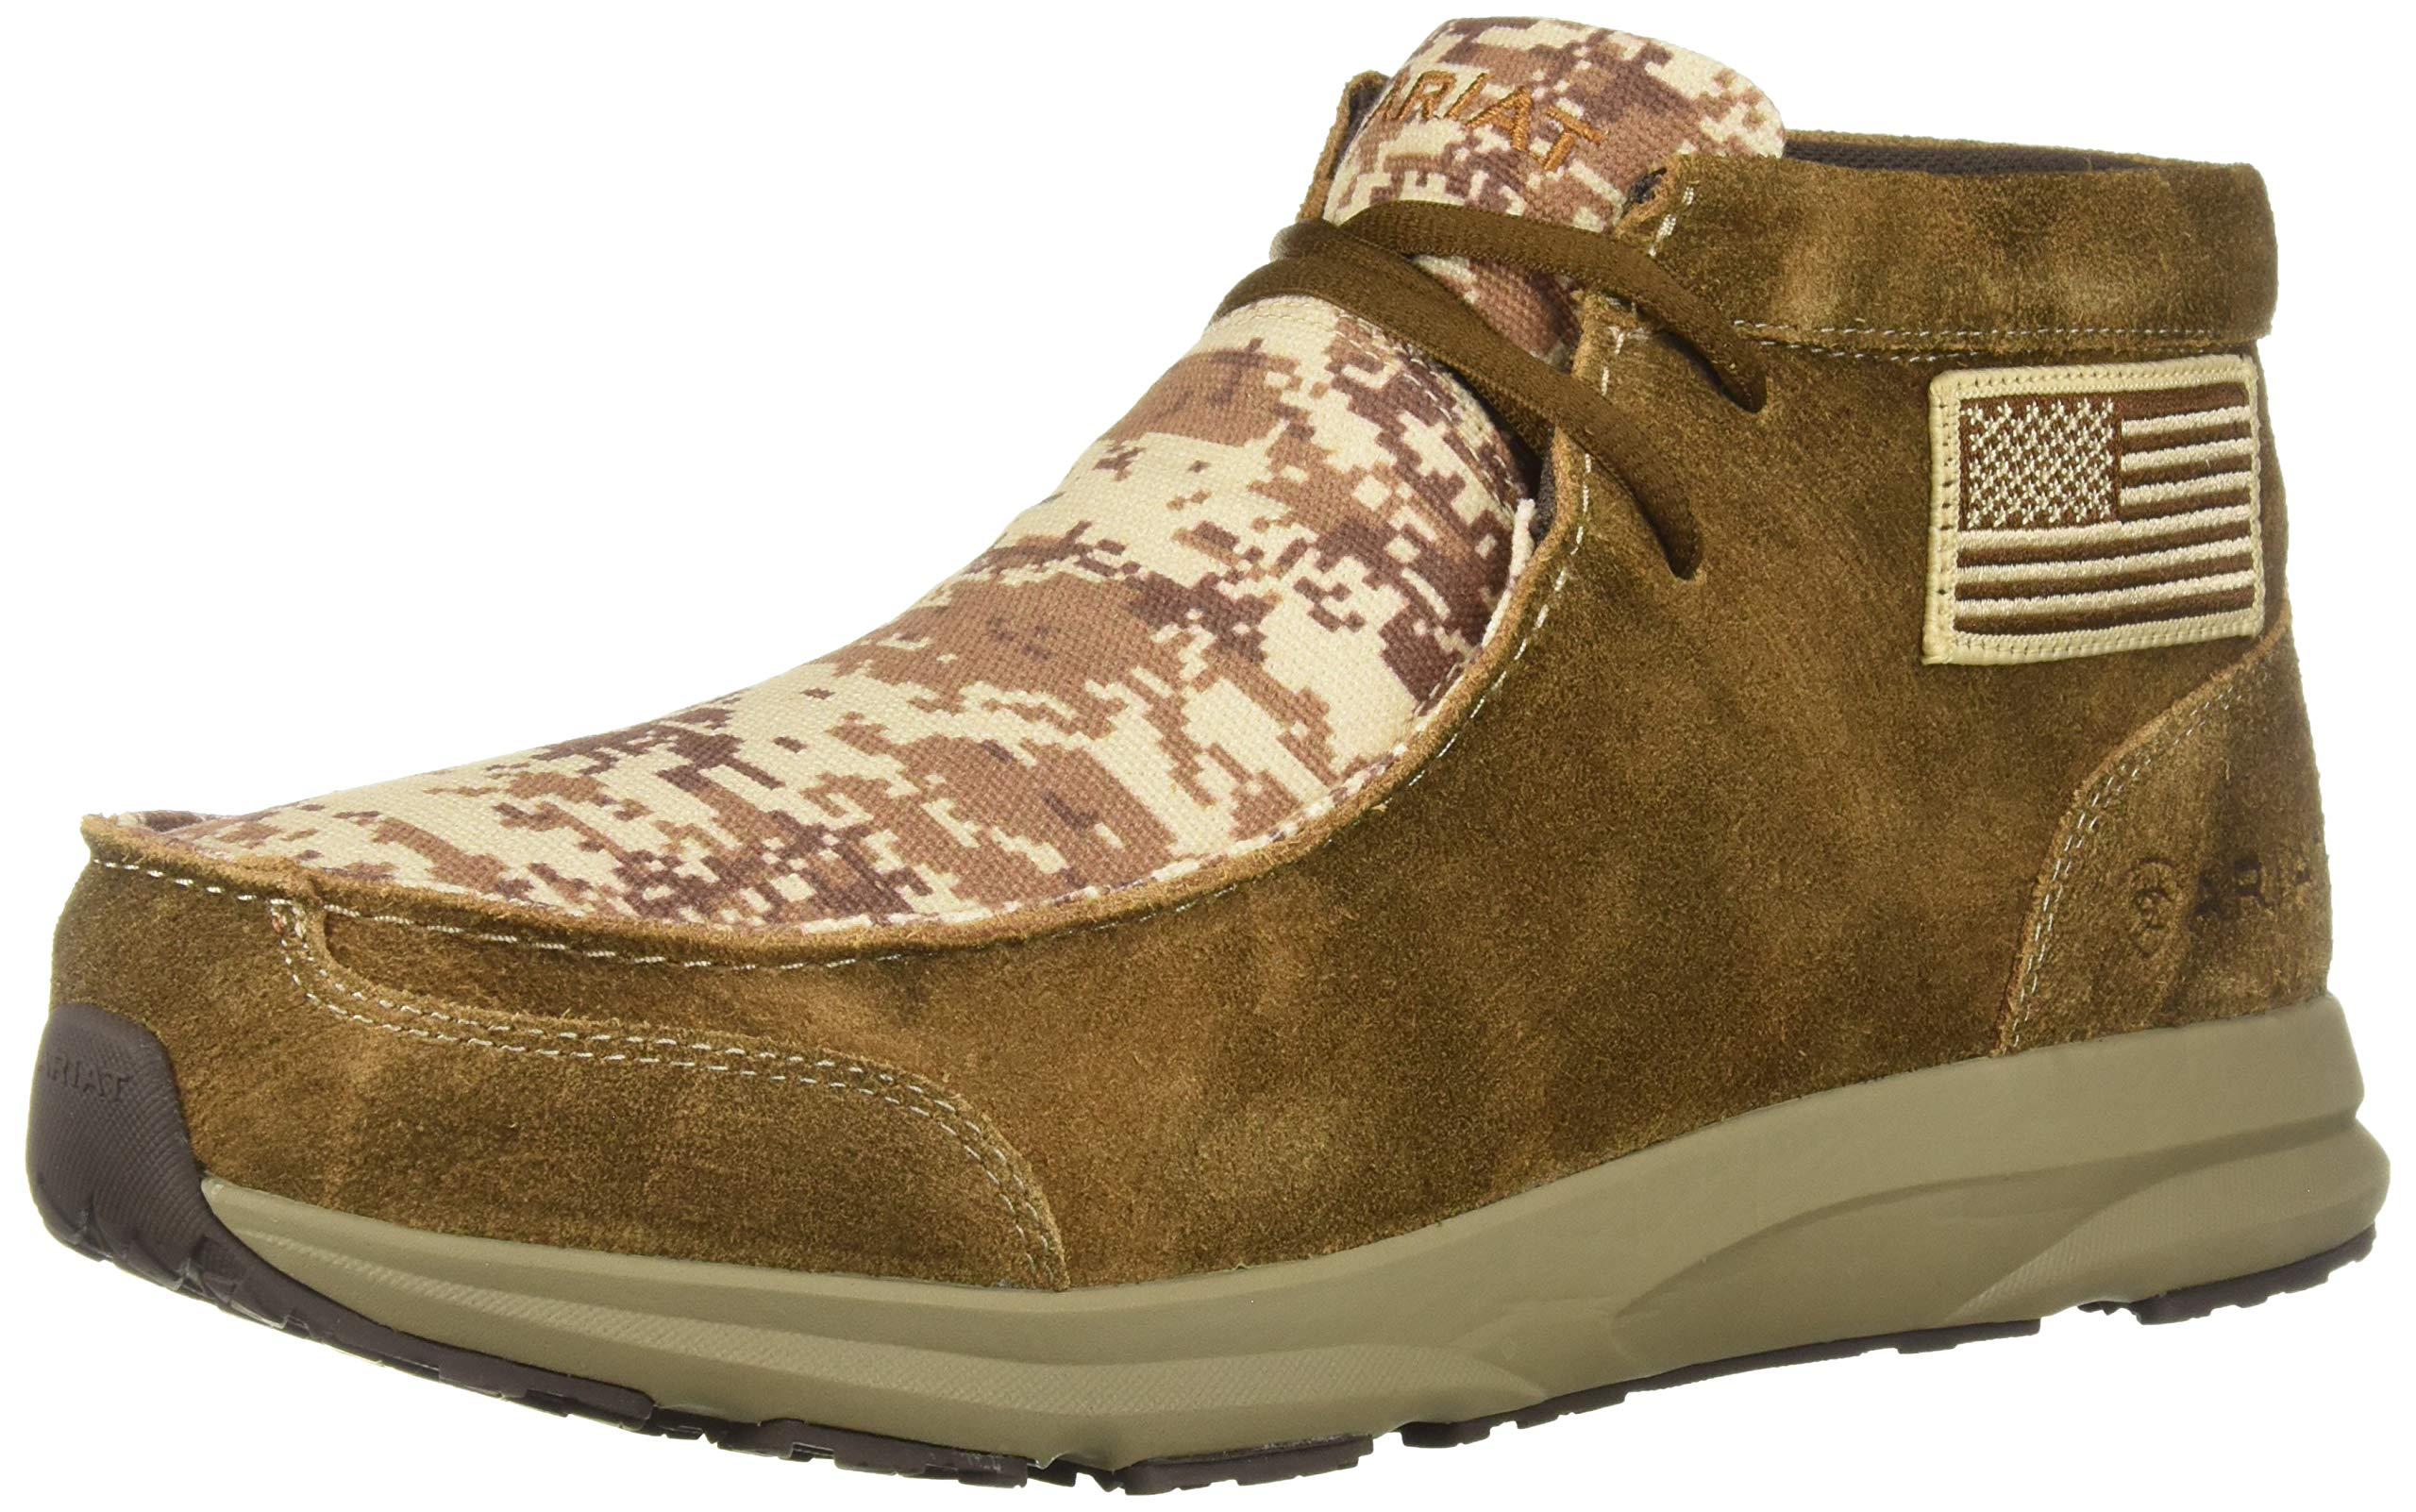 Ariat Men's Spitfire Patriot Western Boot, Antique Mocha Washed Suede/Sand camo, 9.5D